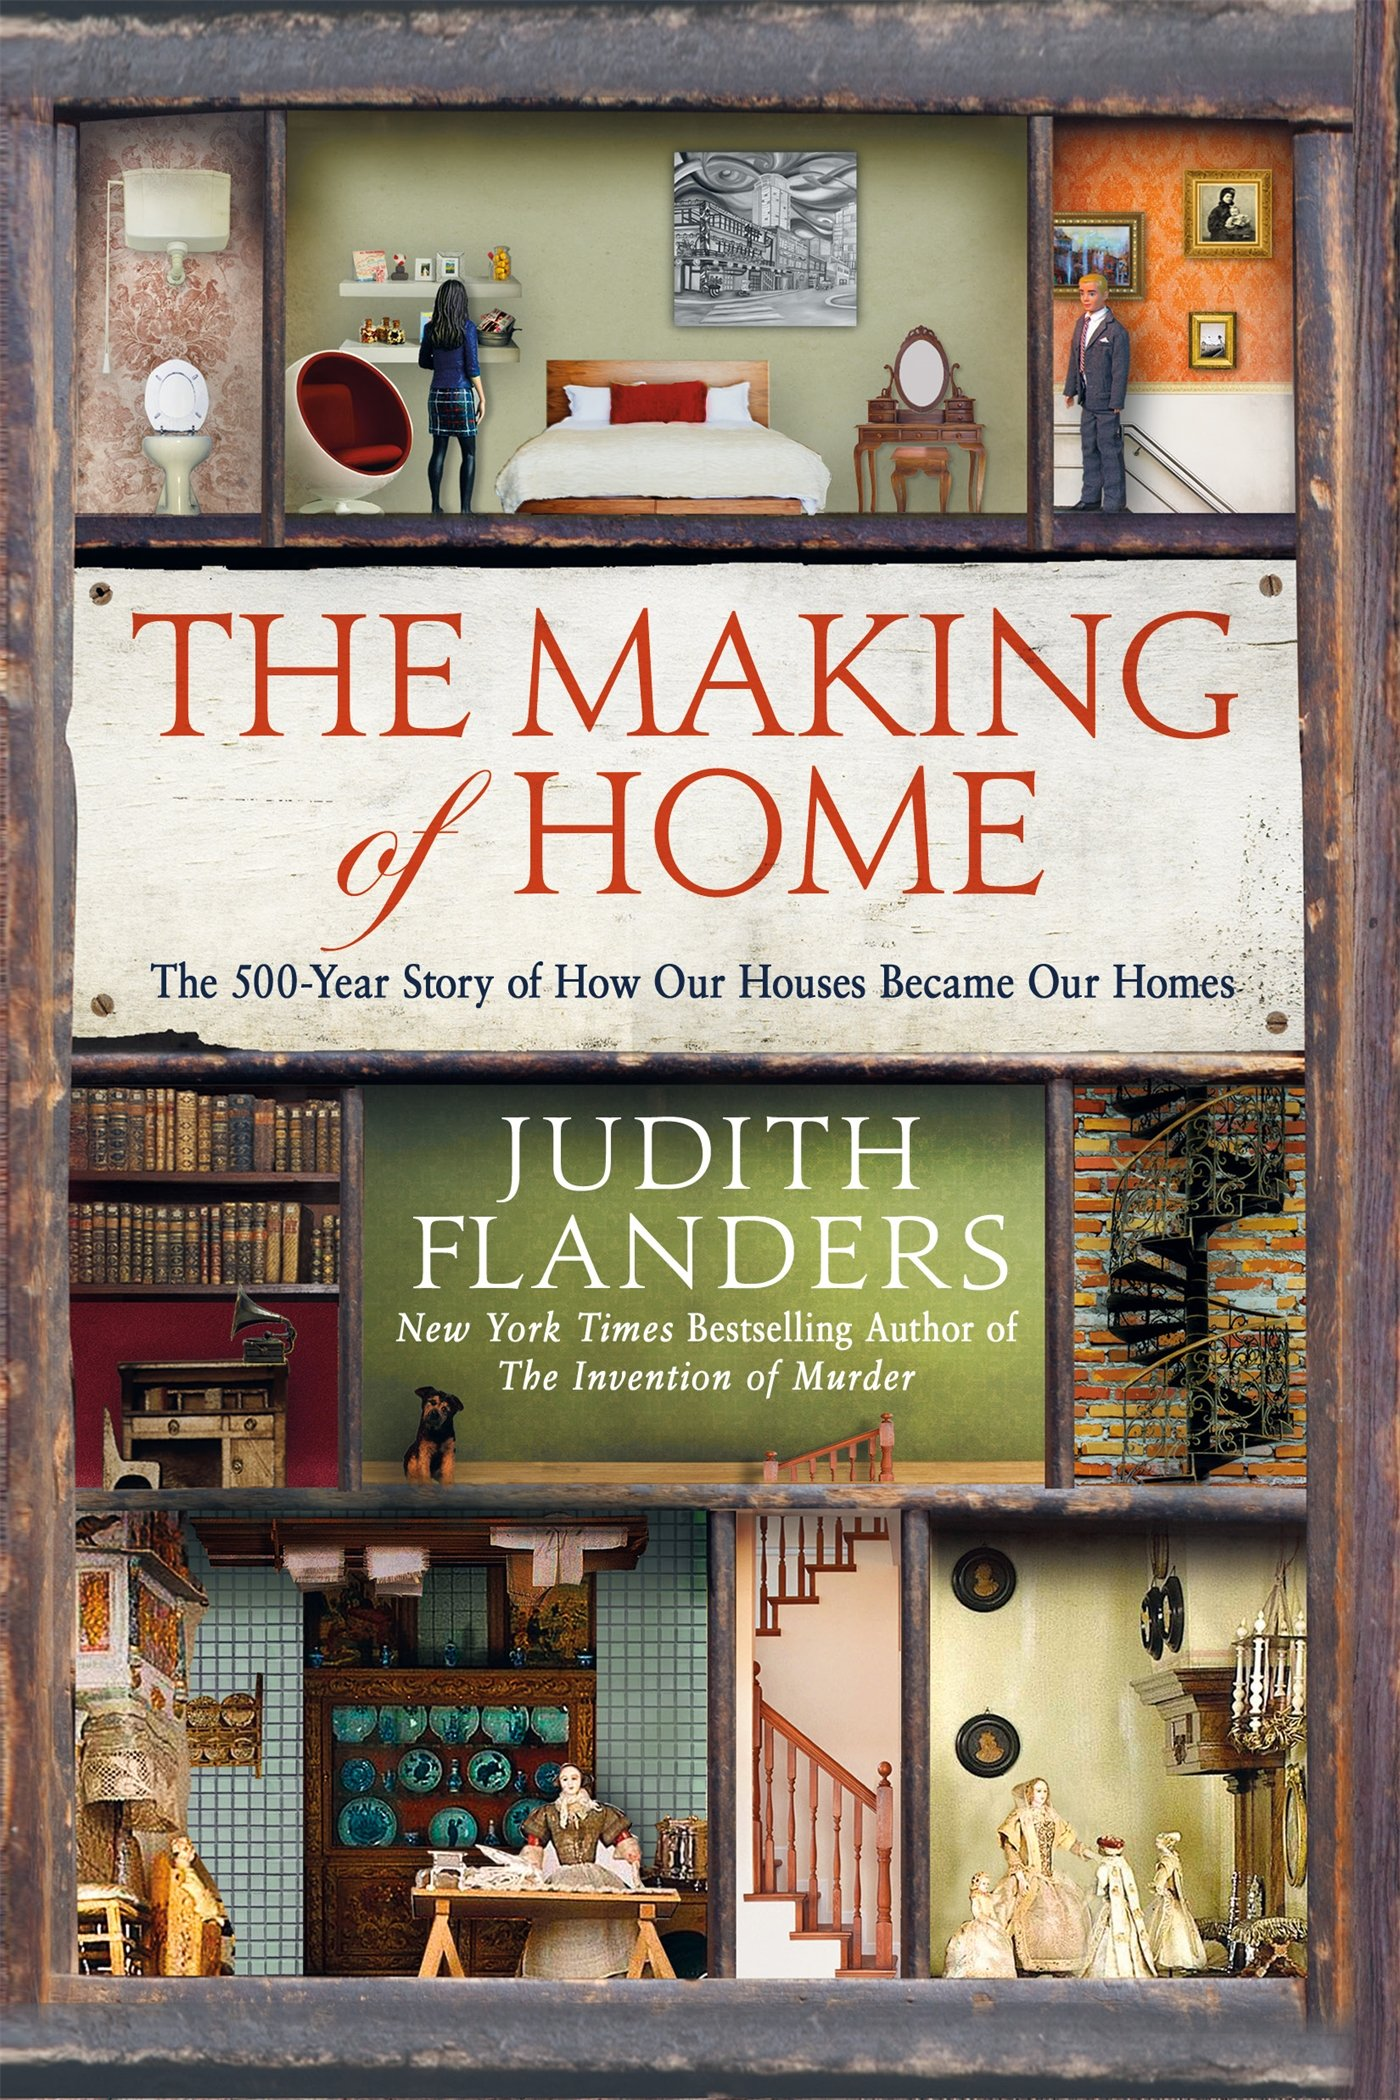 "7. The Making of 澳门棋牌游戏登陆home: The 500-Year Story of How Our Houses Became Our 澳门棋牌游戏登陆homes by Judith Flanders - ""Judith Flanders's new book isn't just smart and diverting but it is also brave… Flanders uses books well and pictures intelligently, searching images for hidden meaning… this book has charm and learning."" - The New York Times Book ReviewAvailable at Powell's City of Books for $10.98"